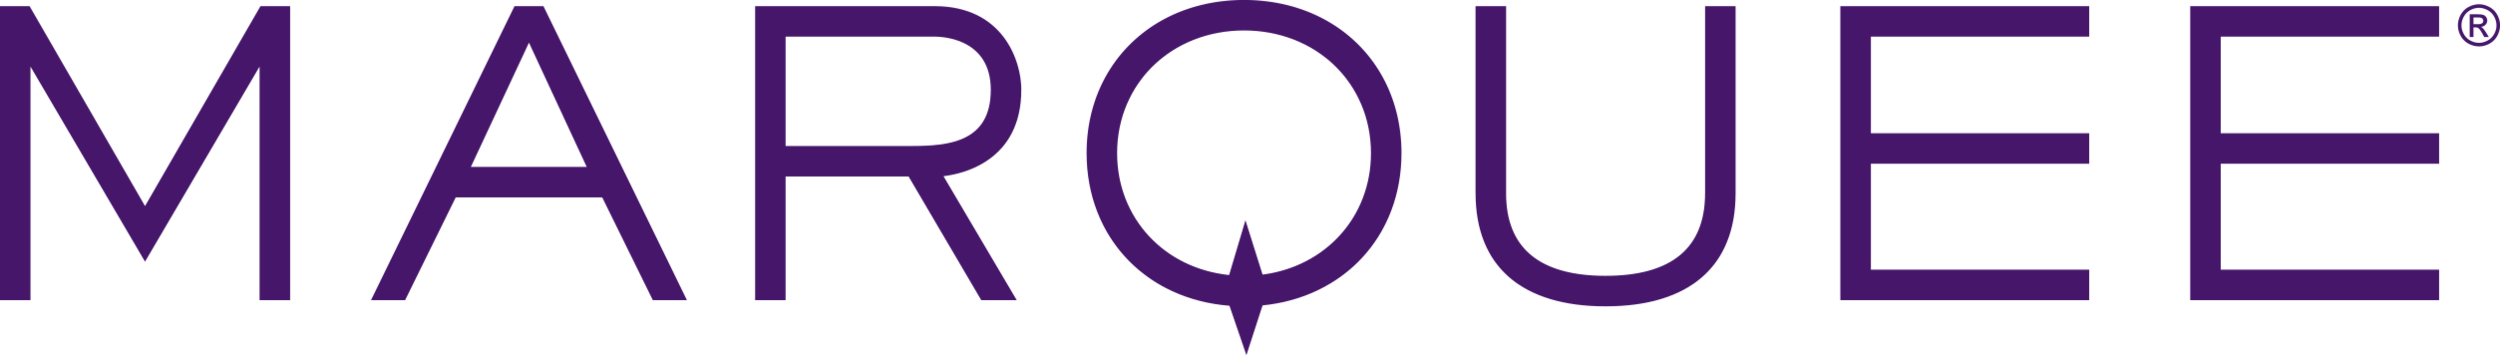 marquee-purple.png